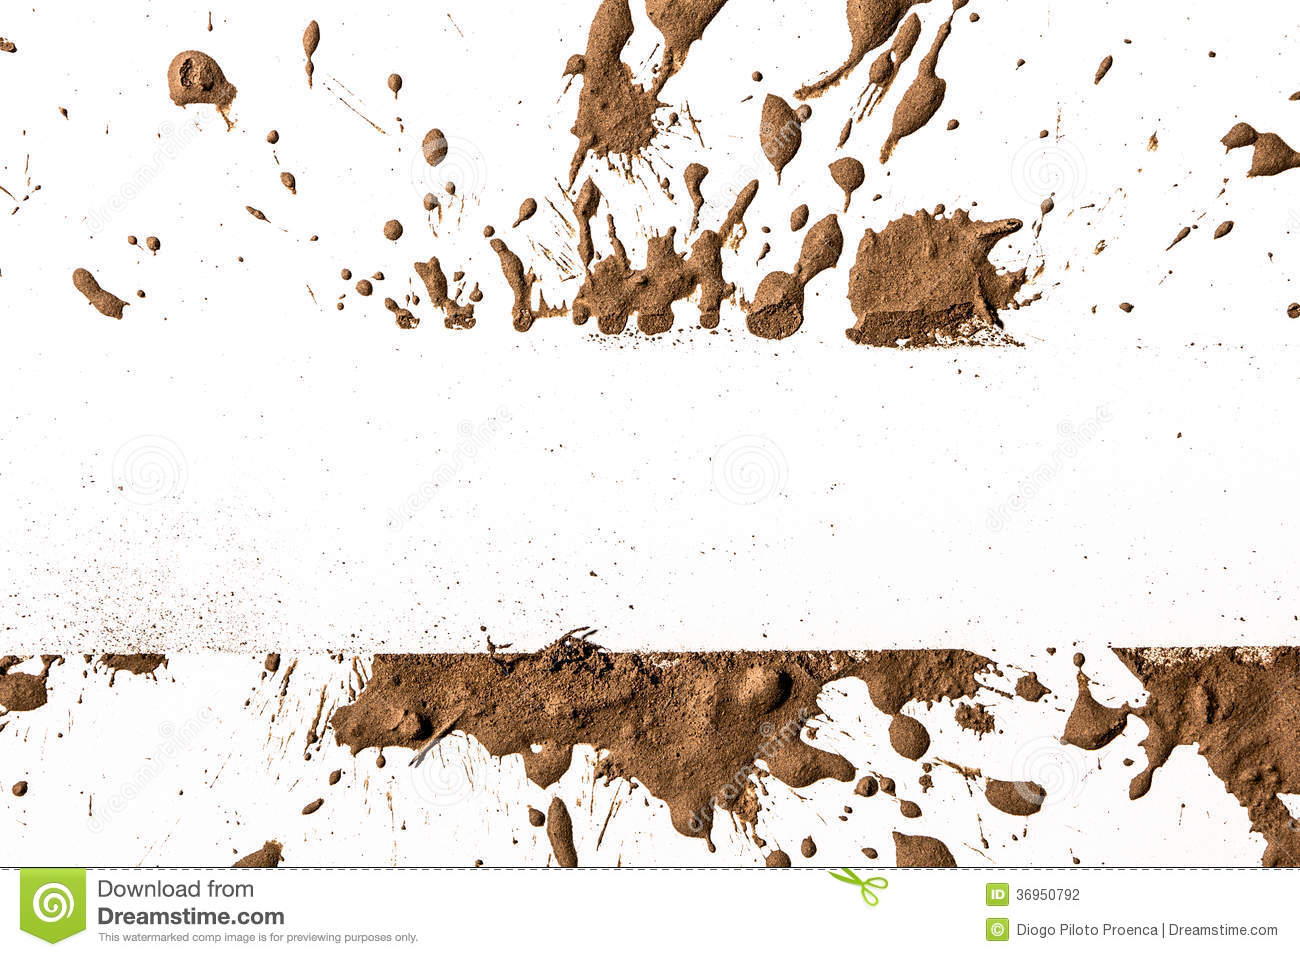 Texture clay moving in white background.